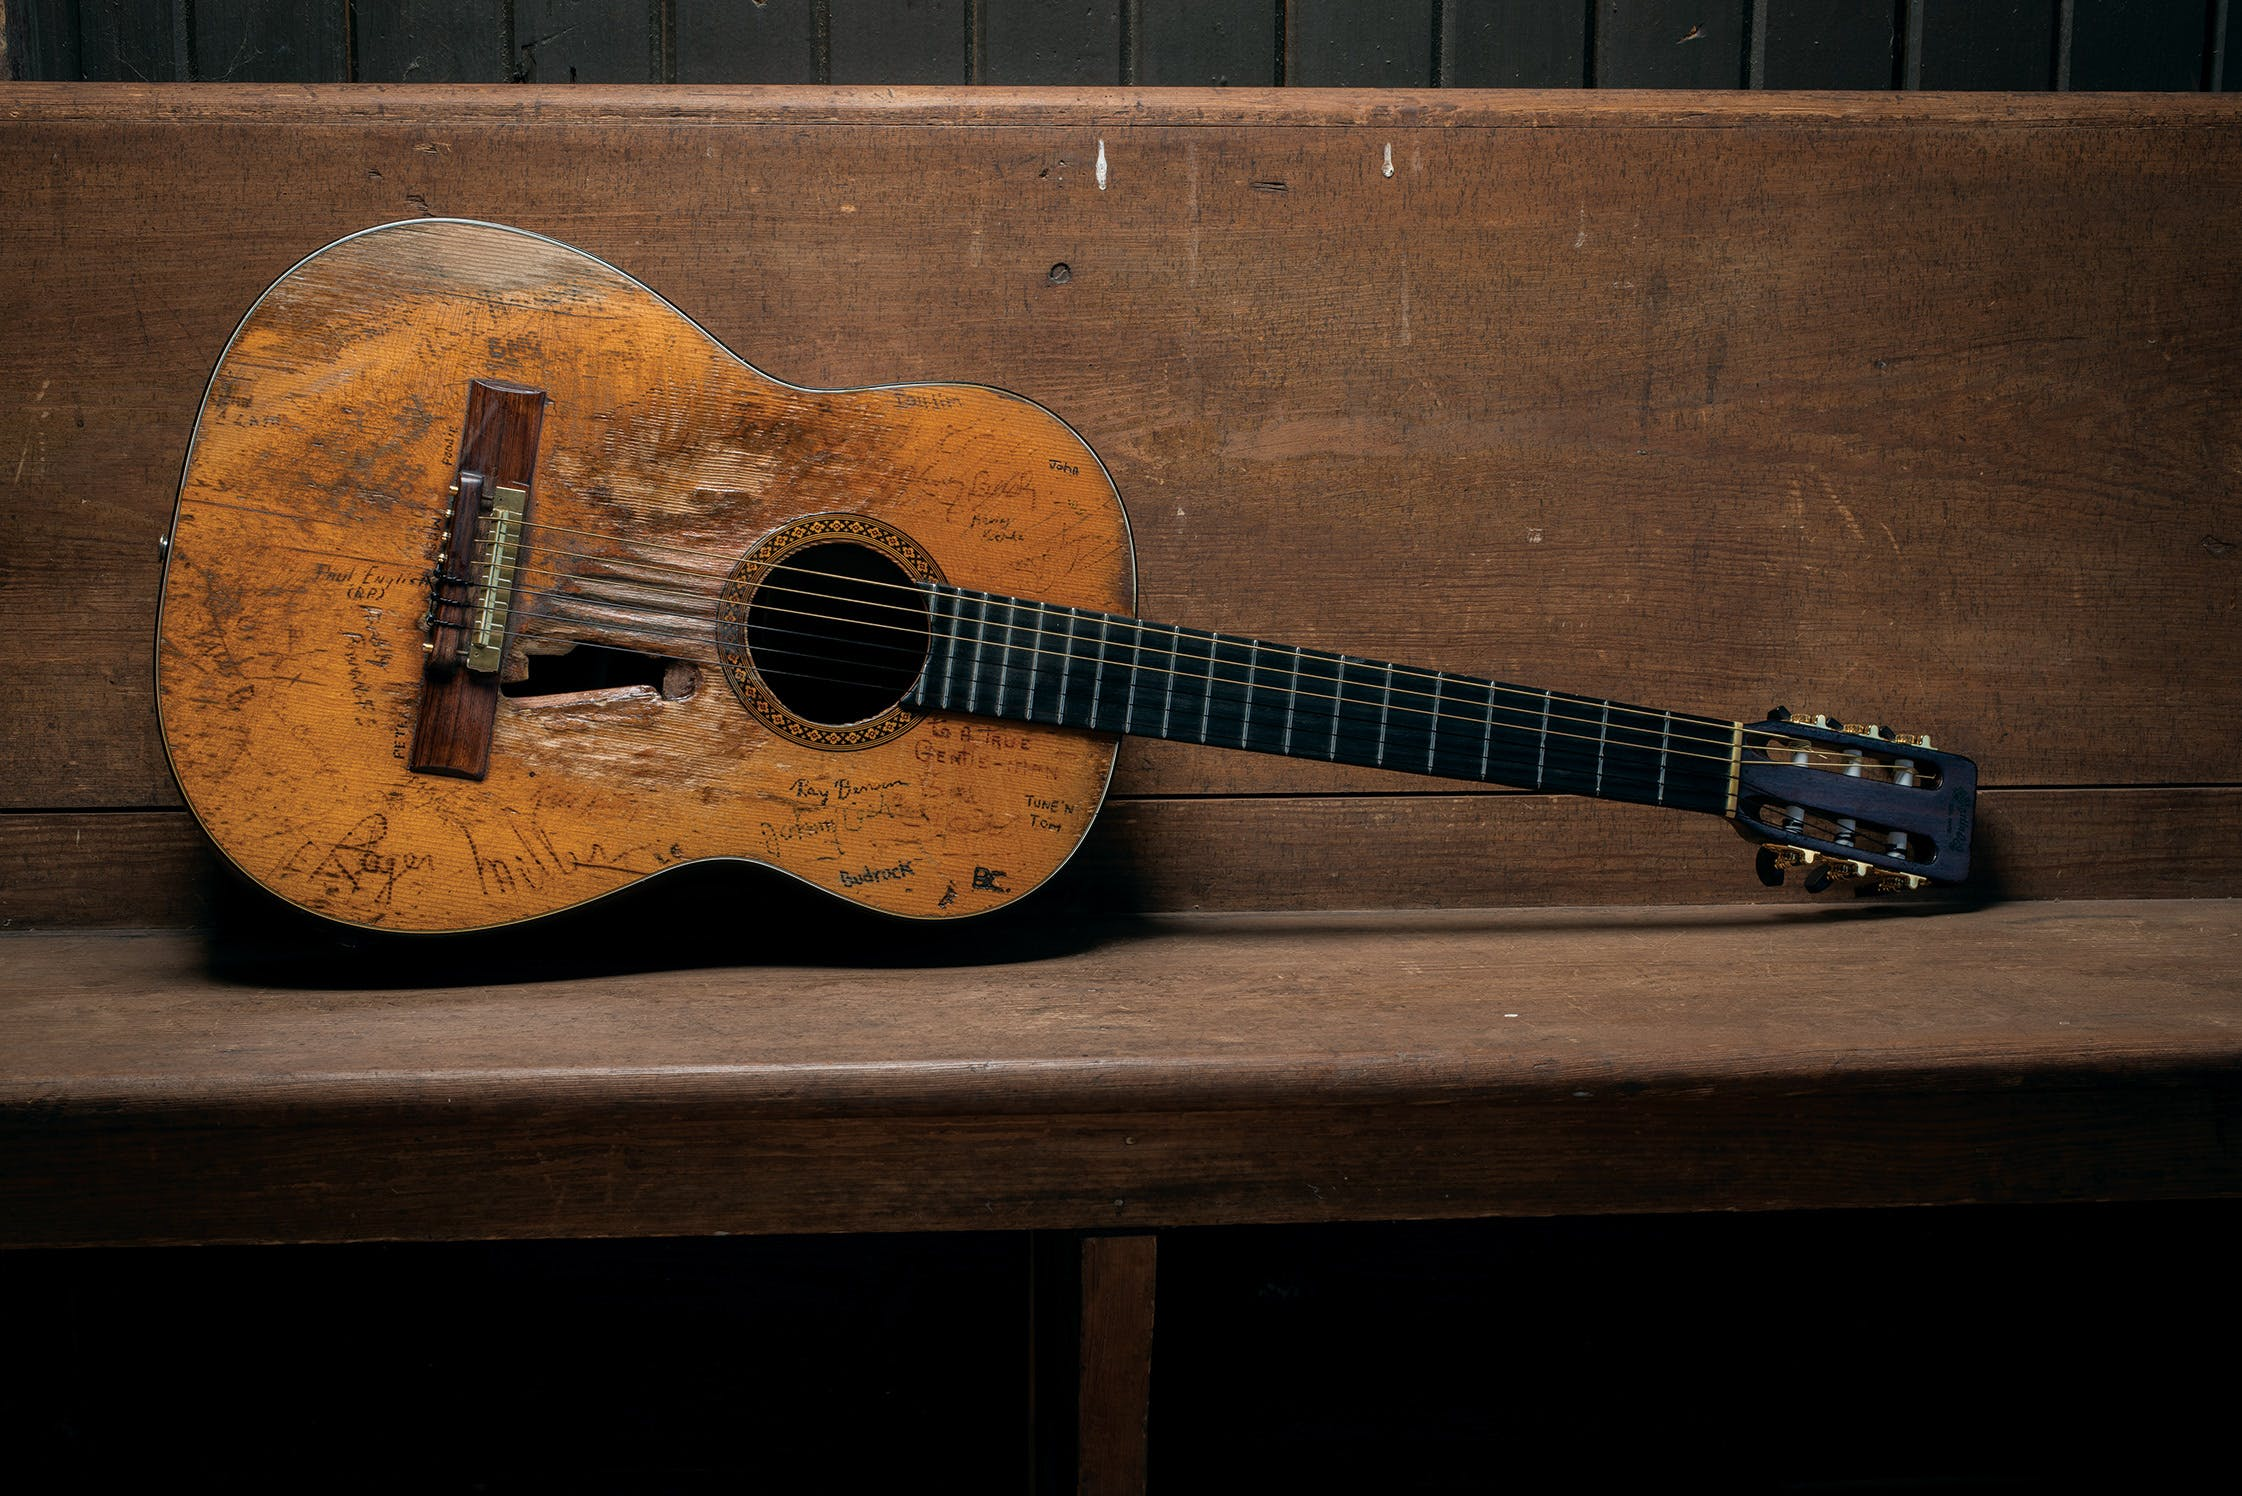 Nelson's longtime guitar, Trigger, photographed at Nelson's ranch.